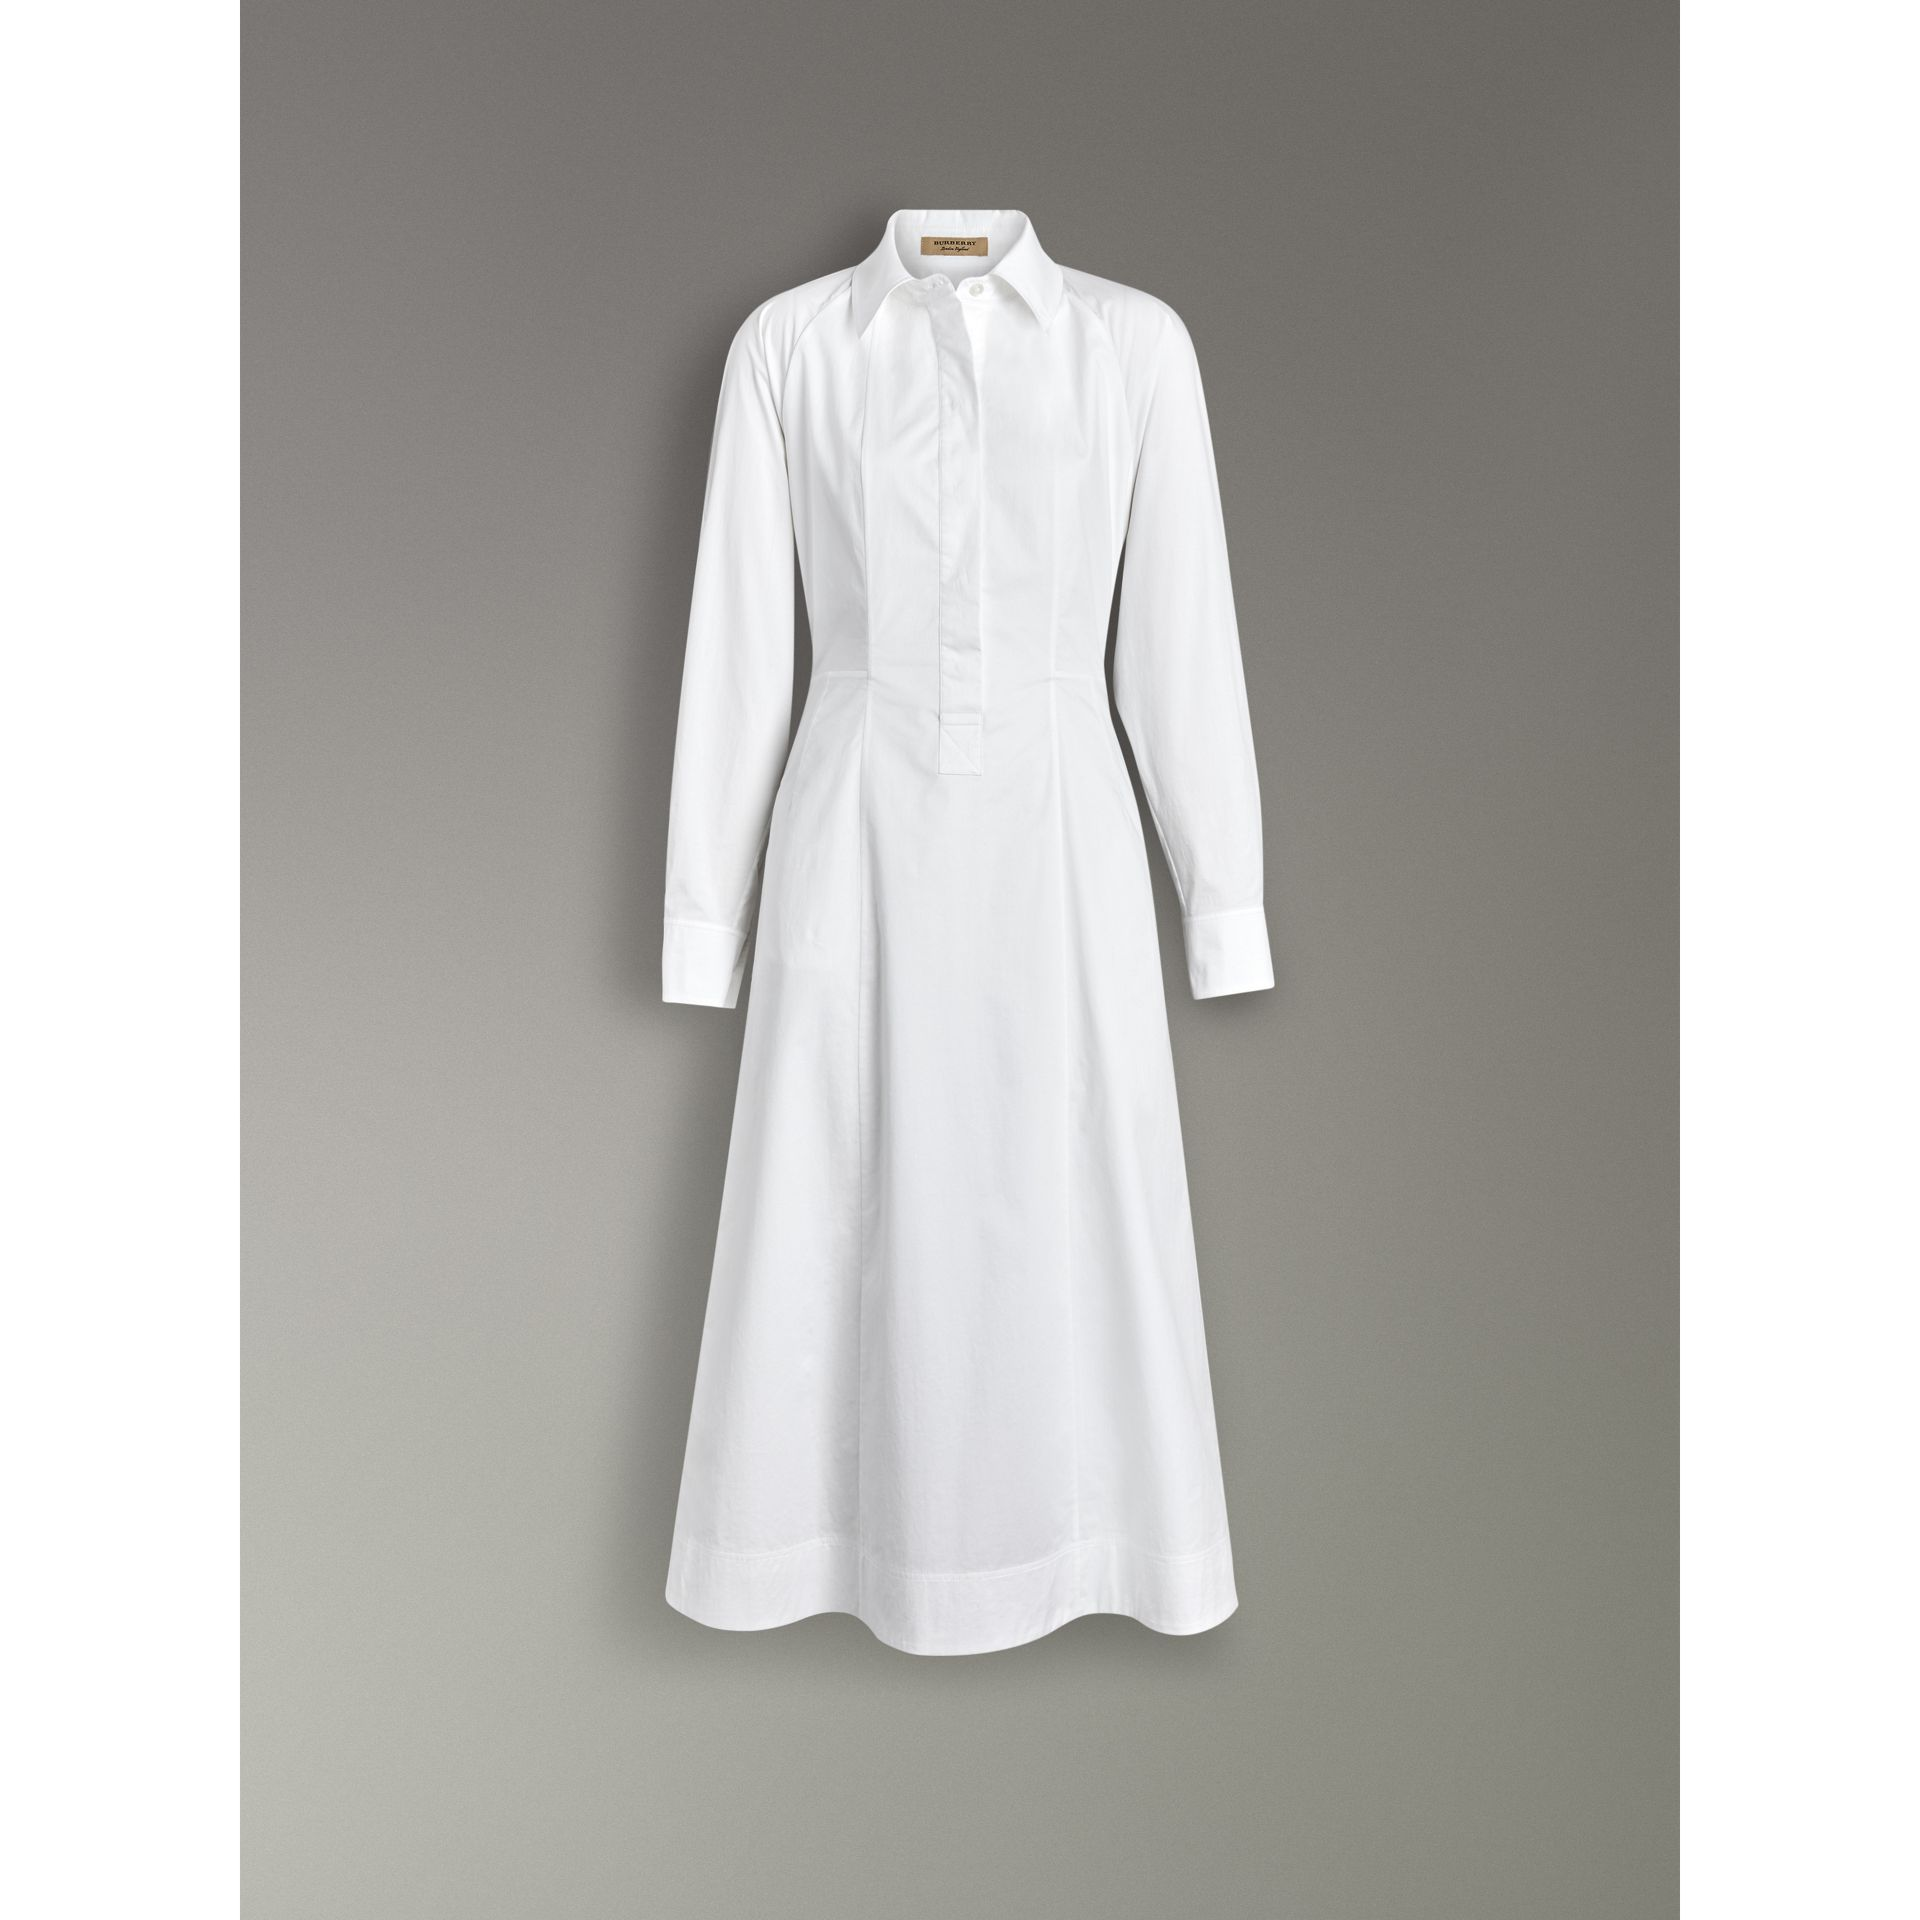 Panelled Stretch Cotton Shirt Dress in White - Women | Burberry - gallery image 3